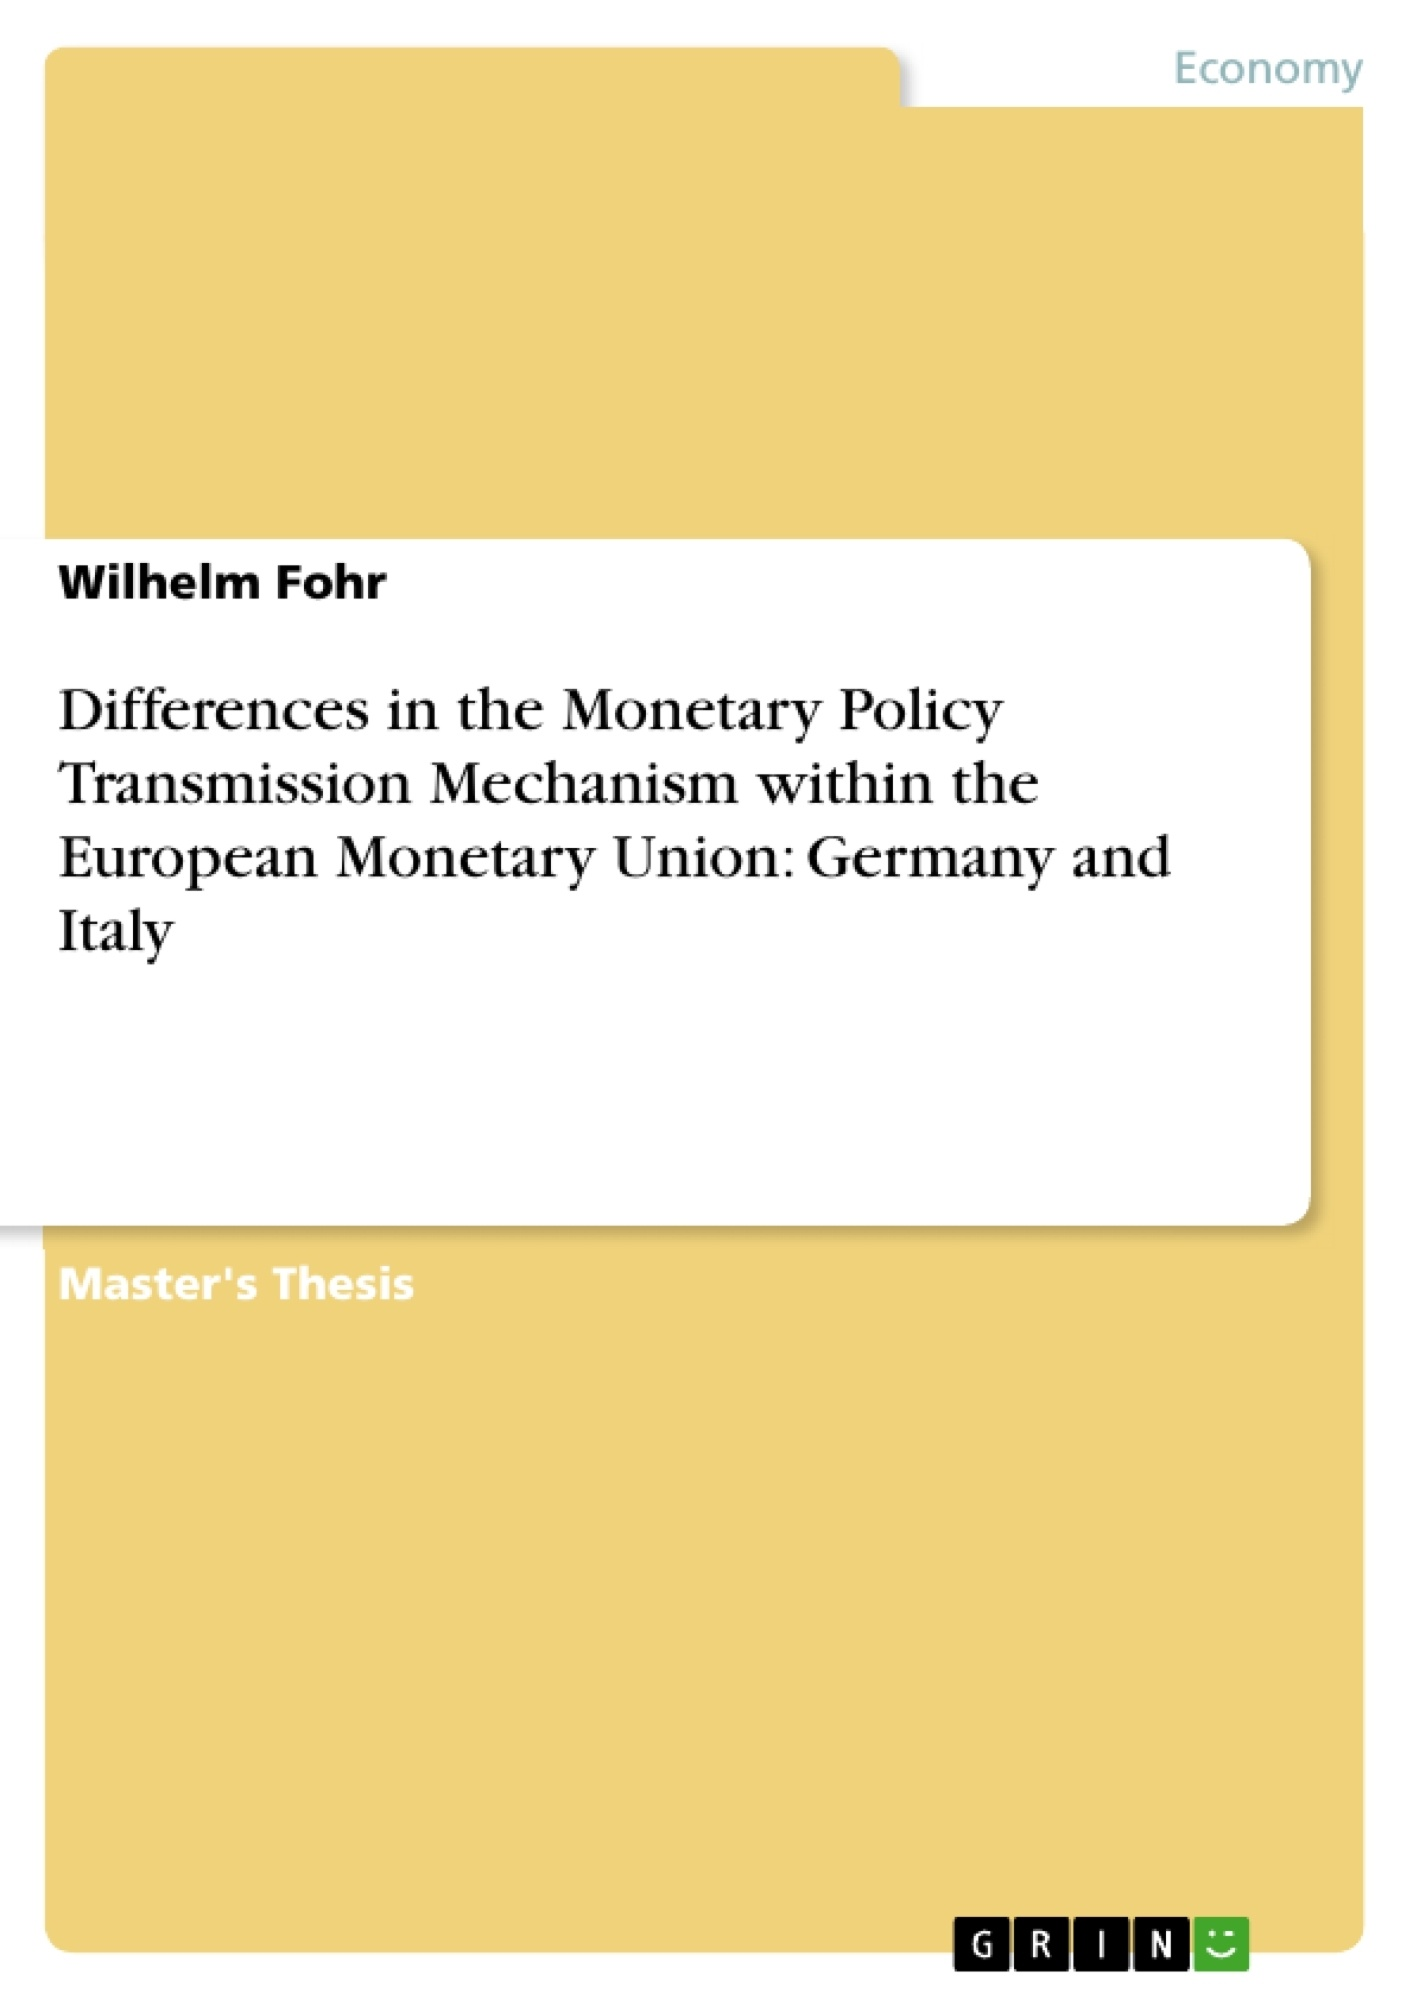 Title: Differences in the Monetary Policy Transmission Mechanism within the European Monetary Union: Germany and Italy